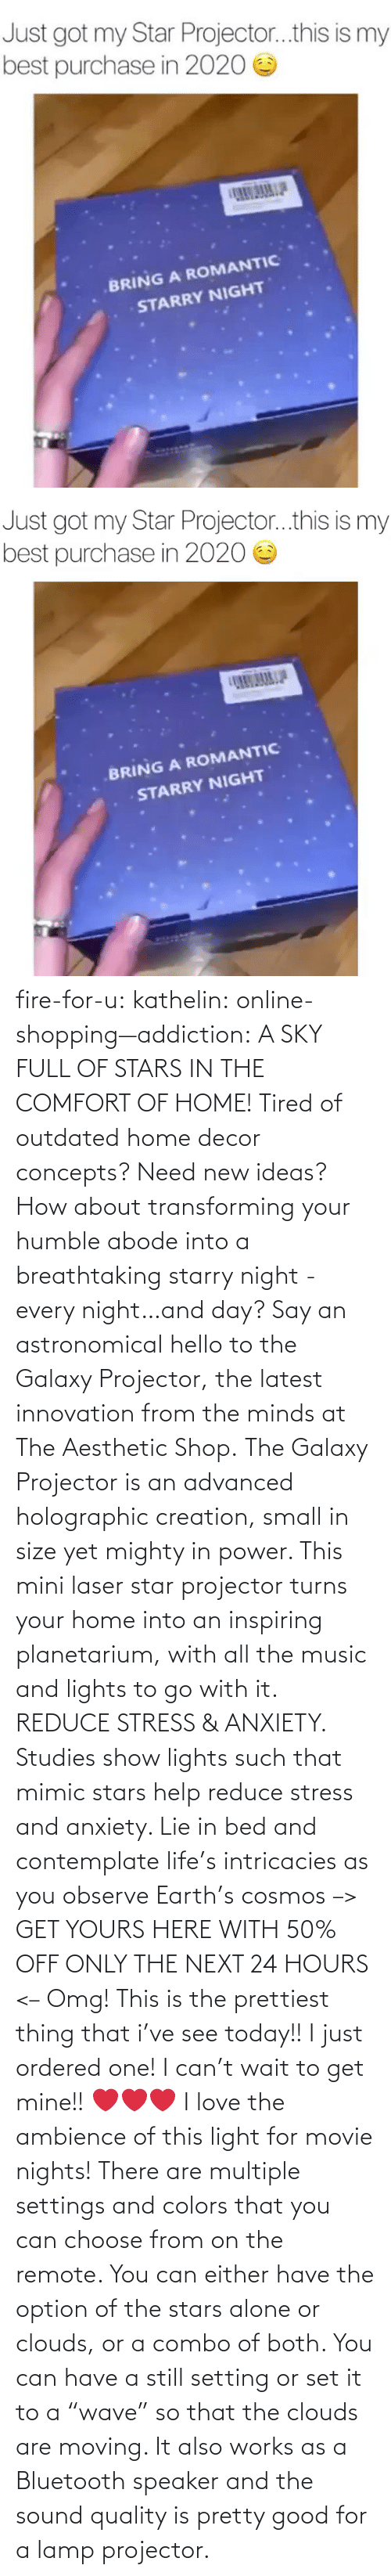 "Humble: fire-for-u:  kathelin: online-shopping—addiction:  A SKY FULL OF STARS IN THE COMFORT OF HOME! Tired of outdated home decor concepts? Need new ideas? How about transforming your humble abode into a breathtaking starry night - every night…and day? Say an astronomical hello to the Galaxy Projector, the latest innovation from the minds at The Aesthetic Shop. The Galaxy Projector is an advanced holographic creation, small in size yet mighty in power. This mini laser star projector turns your home into an inspiring planetarium, with all the music and lights to go with it. REDUCE STRESS & ANXIETY. Studies show lights such that mimic stars help reduce stress and anxiety. Lie in bed and contemplate life's intricacies as you observe Earth's cosmos  –> GET YOURS HERE WITH 50% OFF ONLY THE NEXT 24 HOURS <–   Omg! This is the prettiest thing that i've see today!! I just ordered one! I can't wait to get mine!! ❤️️❤️️❤️️  I love the ambience of this light for movie nights! There are multiple settings and colors that you can choose from on the remote. You can either have the option of the stars alone or clouds, or a combo of both. You can have a still setting or set it to a ""wave"" so that the clouds are moving. It also works as a Bluetooth speaker and the sound quality is pretty good for a lamp projector."